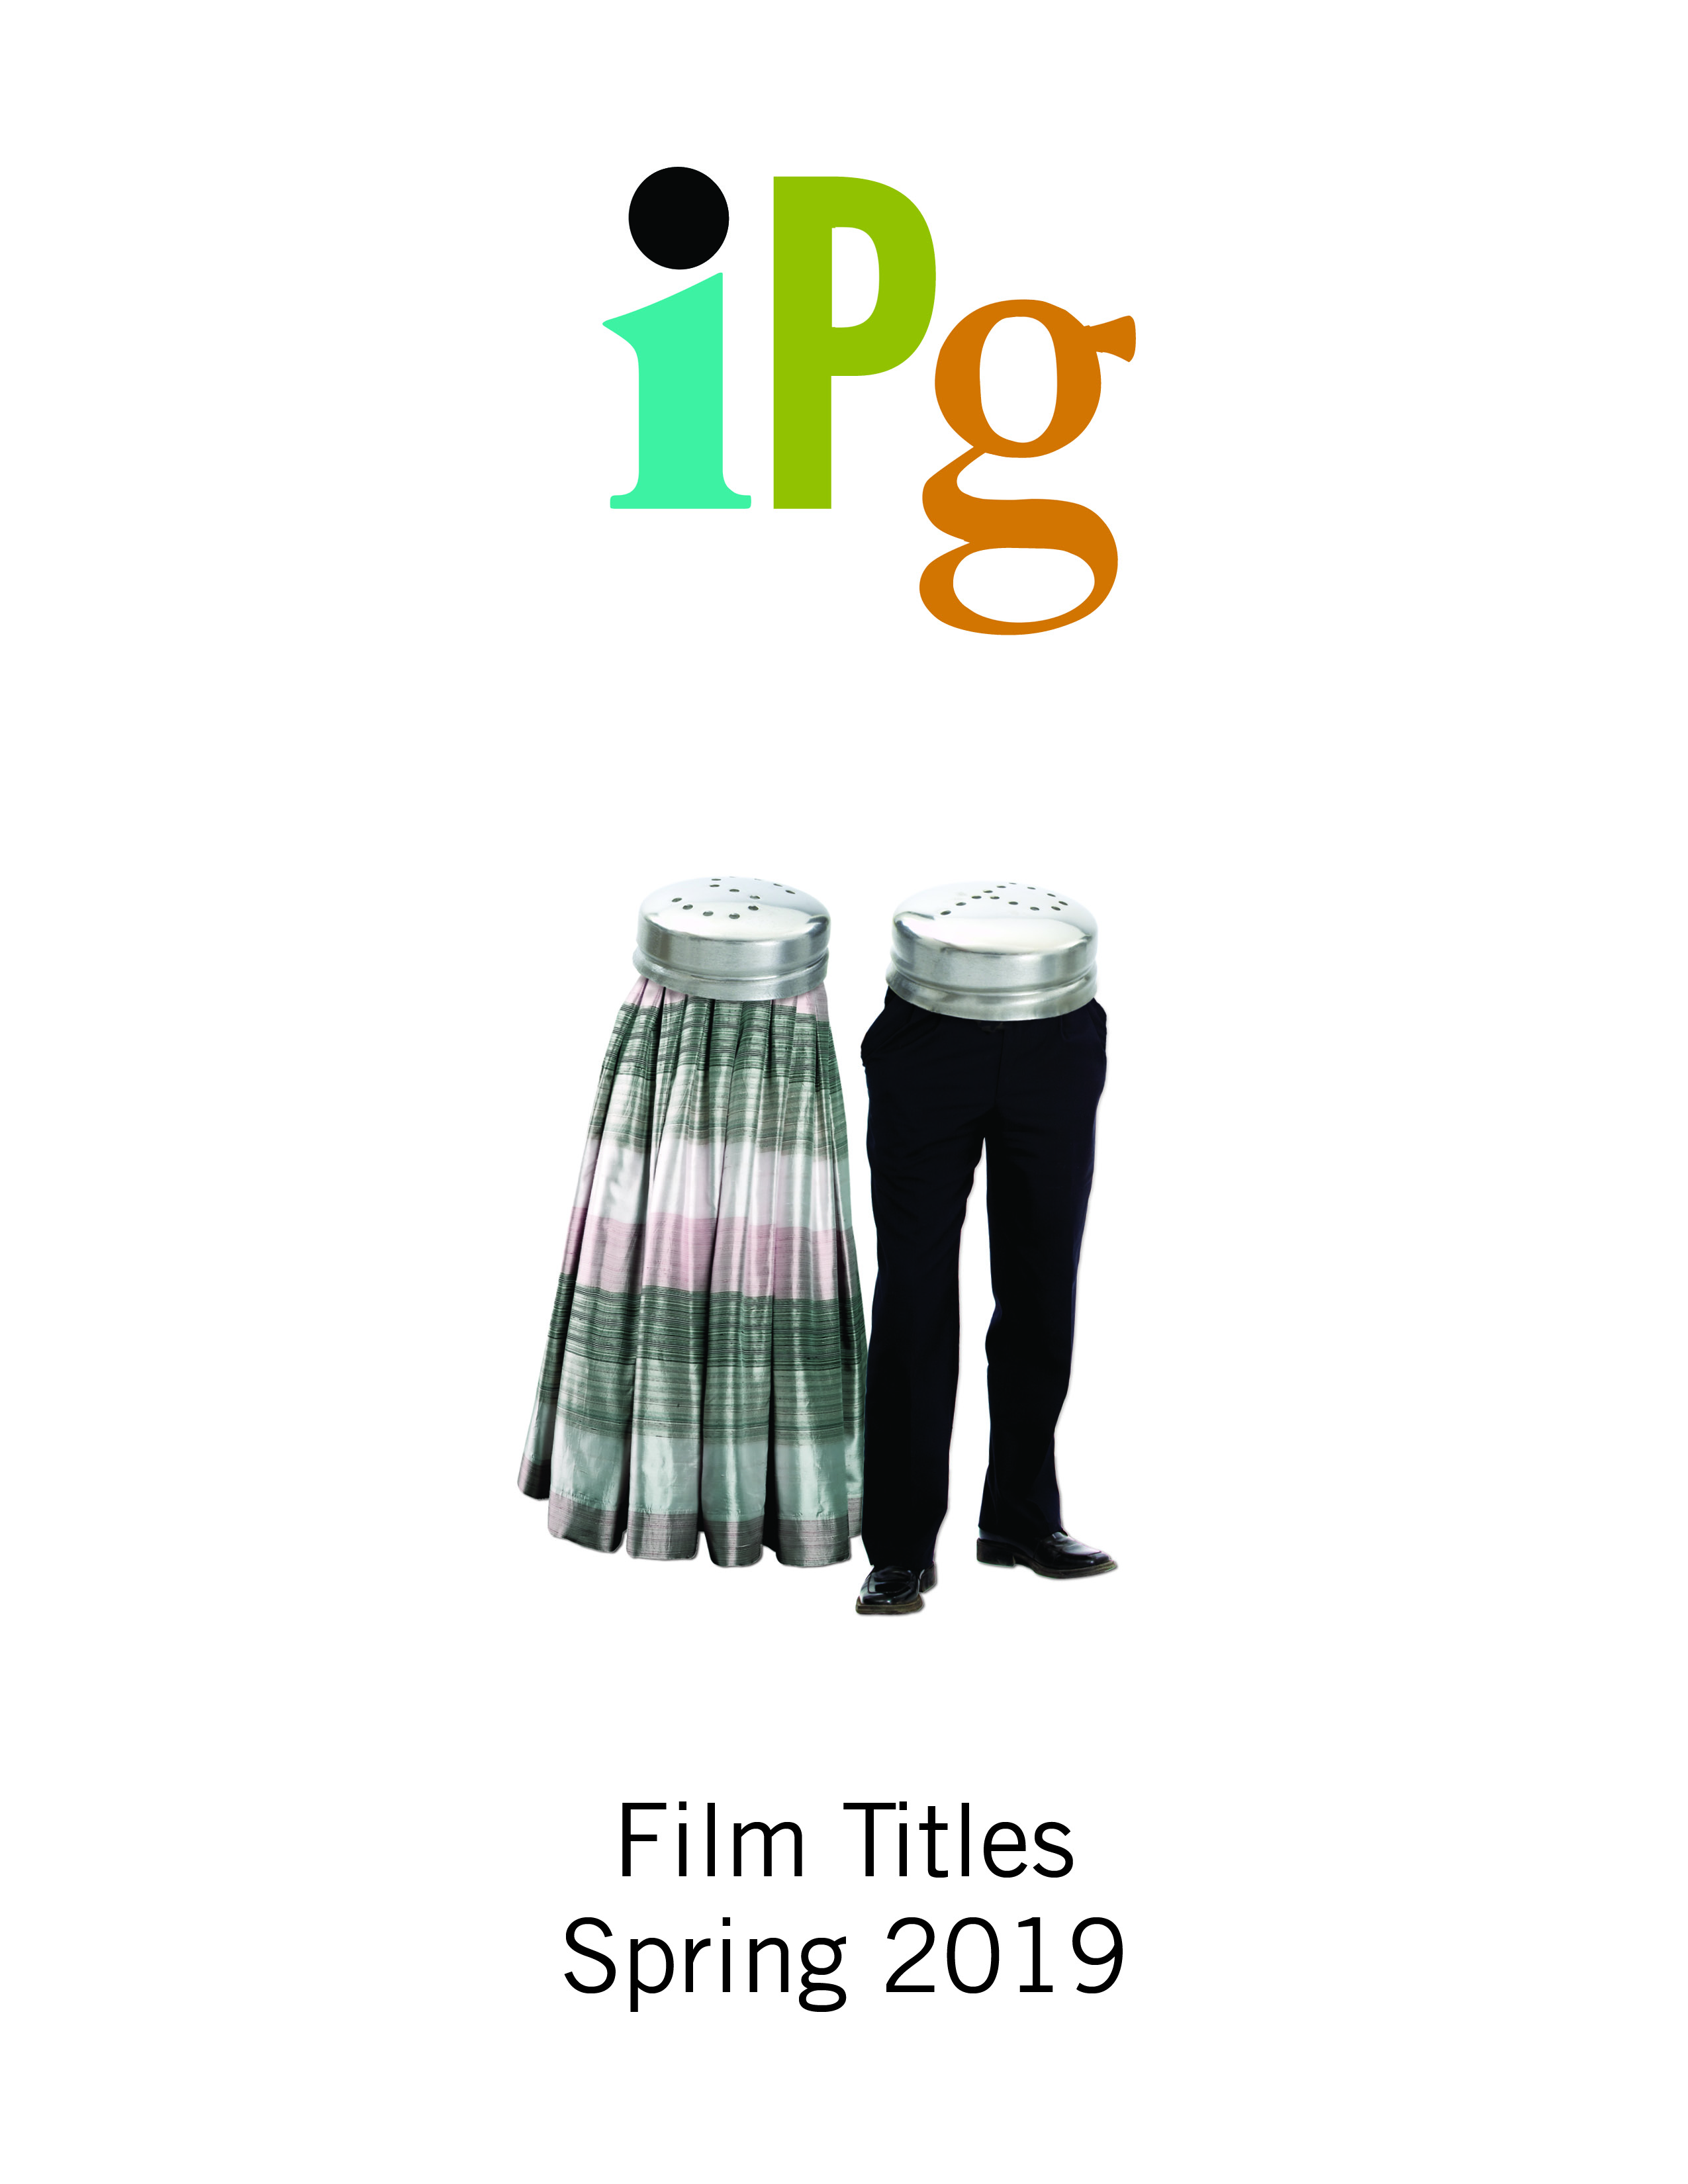 Film Titles